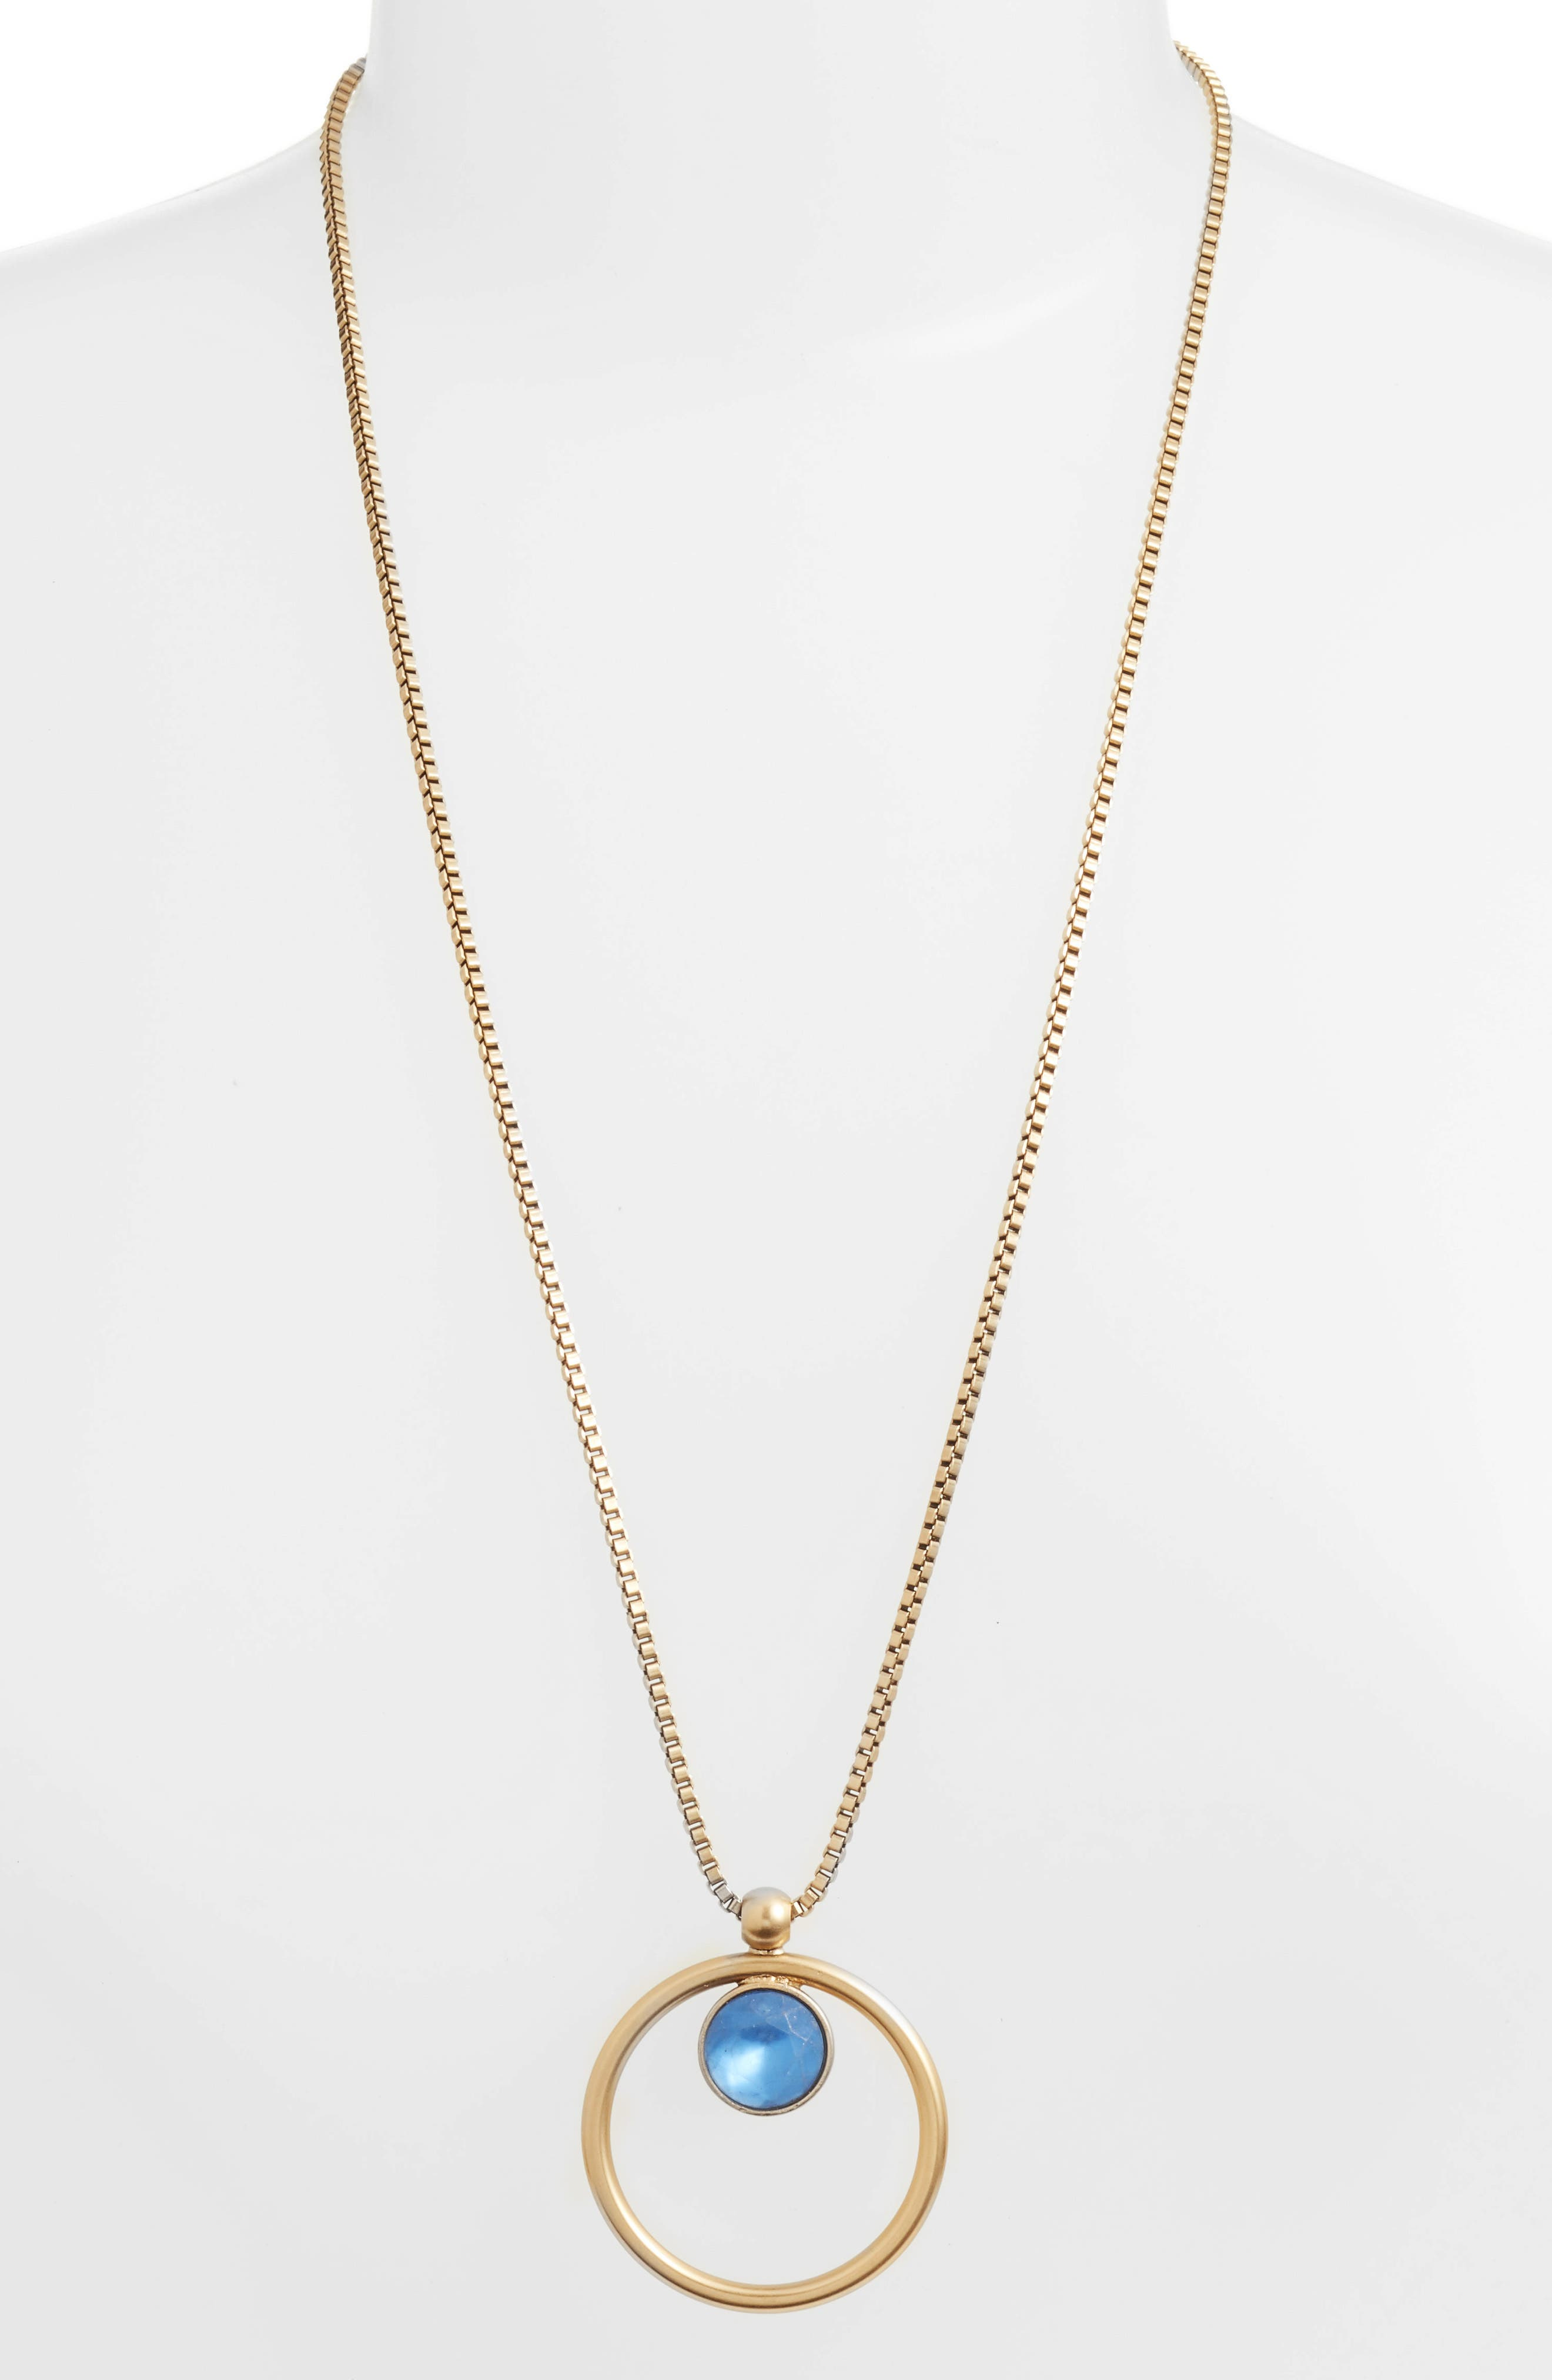 Loren Hope Cecilia Box Chain Necklace